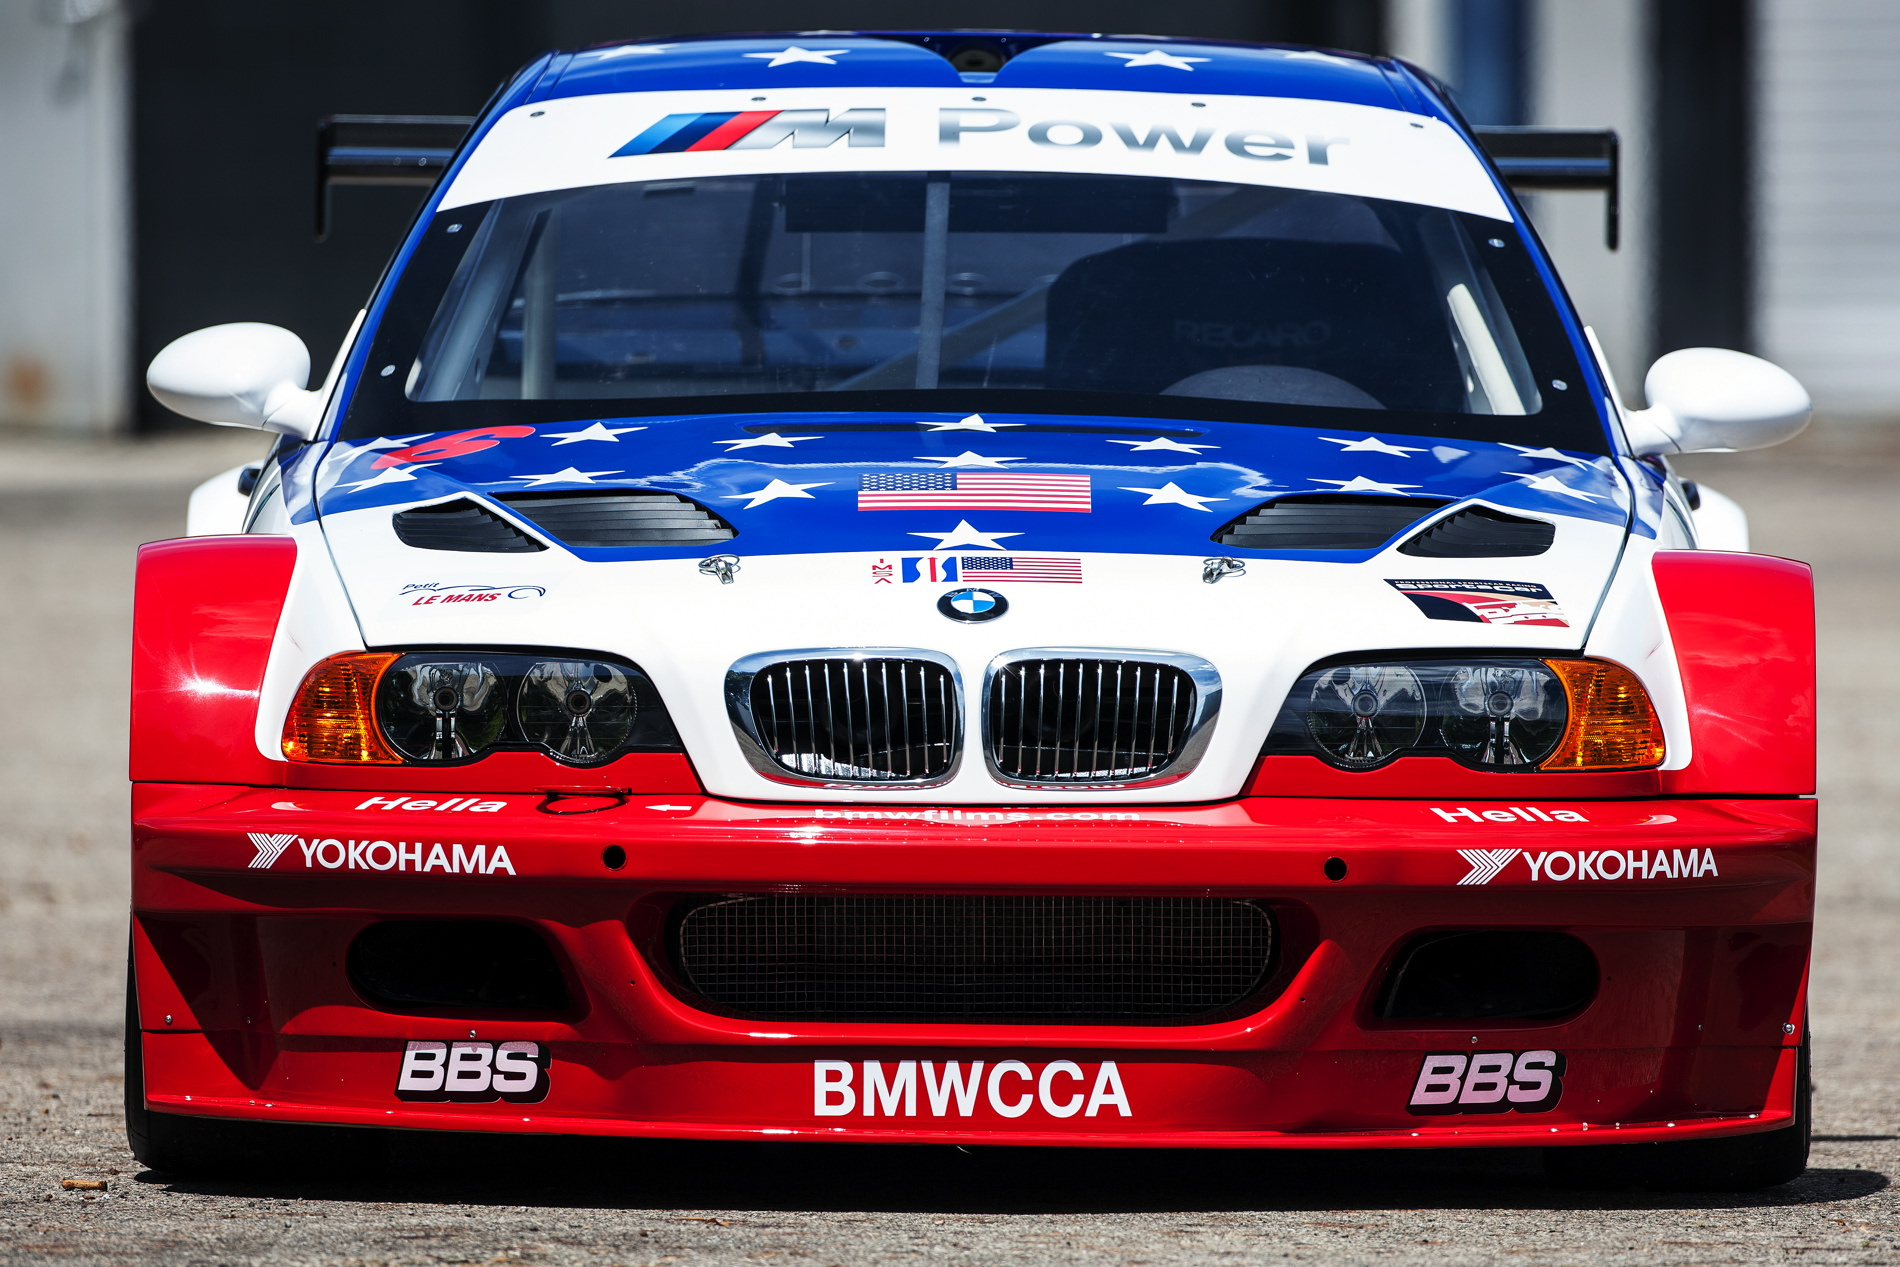 2001 Bmw M3 Gtr Race And Road Cars To Be Presented At Legends Of The Autobahn Concours D Elegance